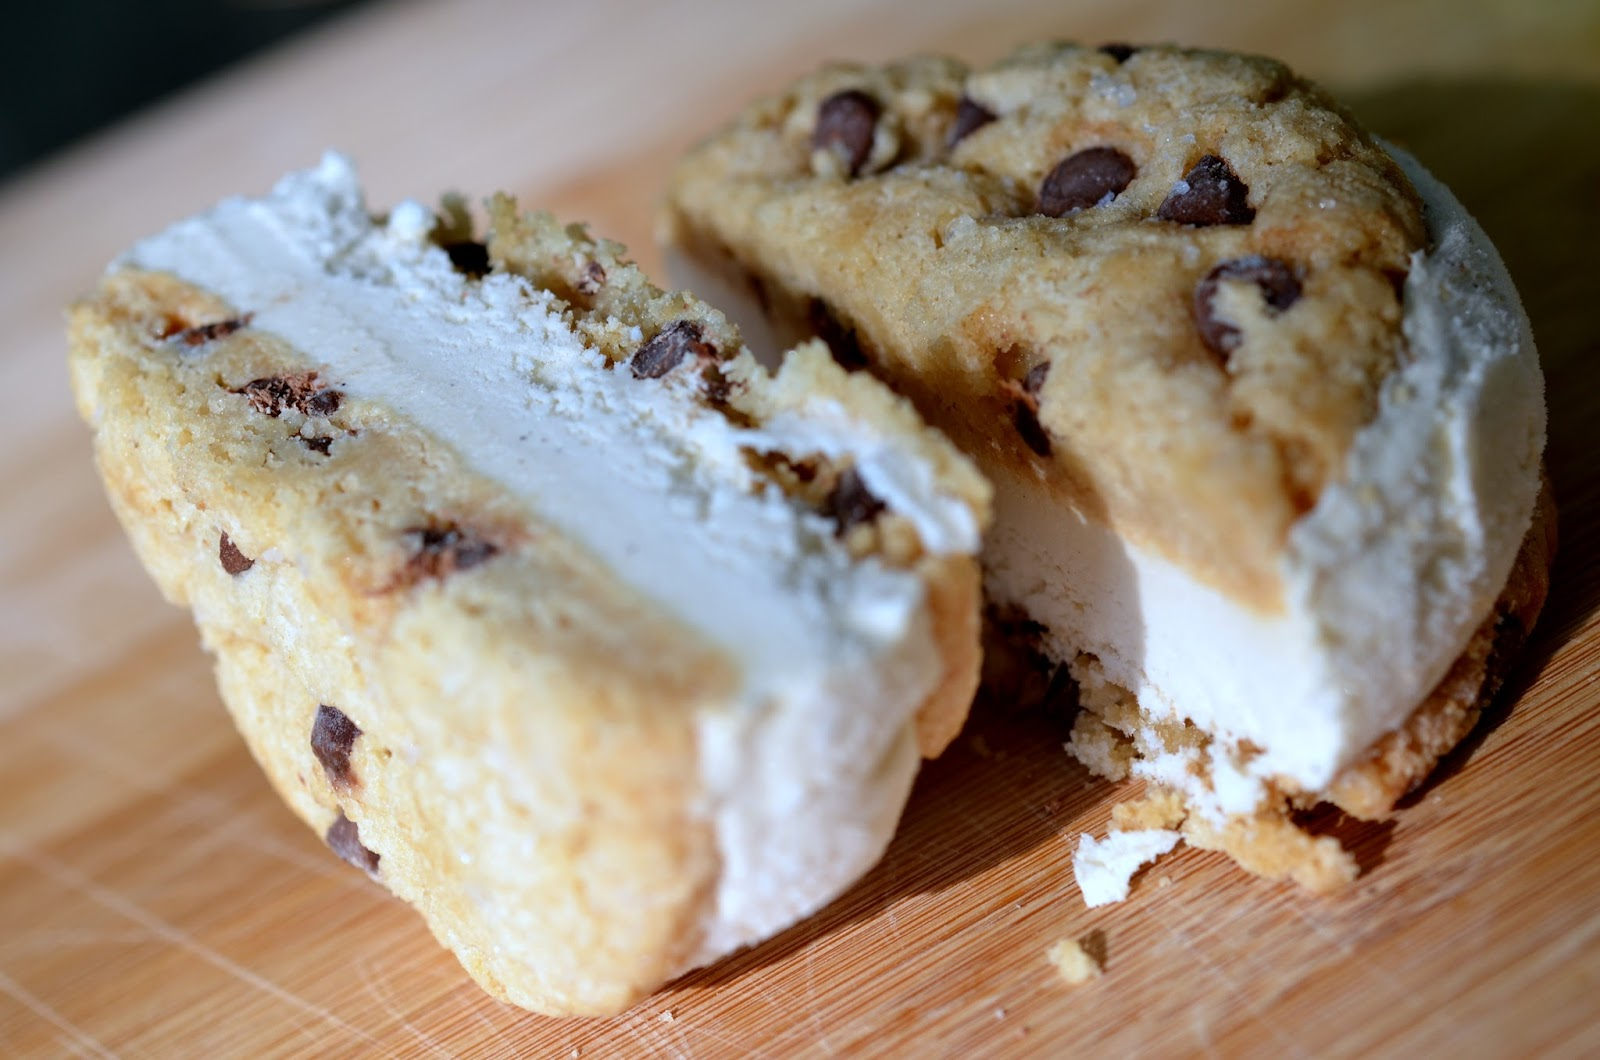 ... Cream Informant: REVIEW: Three Twins Vanilla Bean Ice Cream Sandwiches